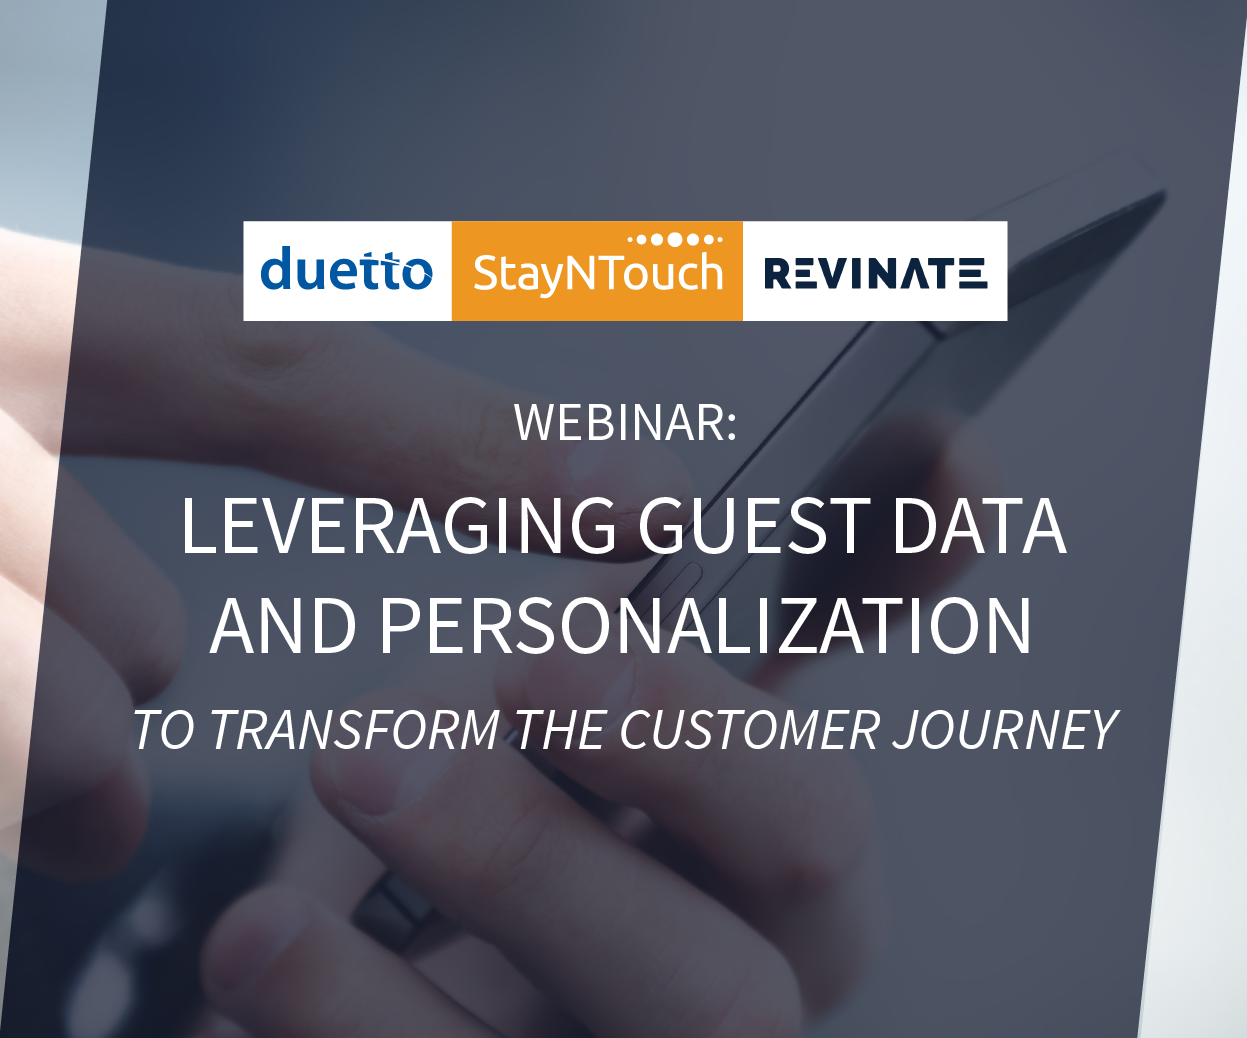 Leveraging Guest Data and Personalization to Transform the Customer Journey